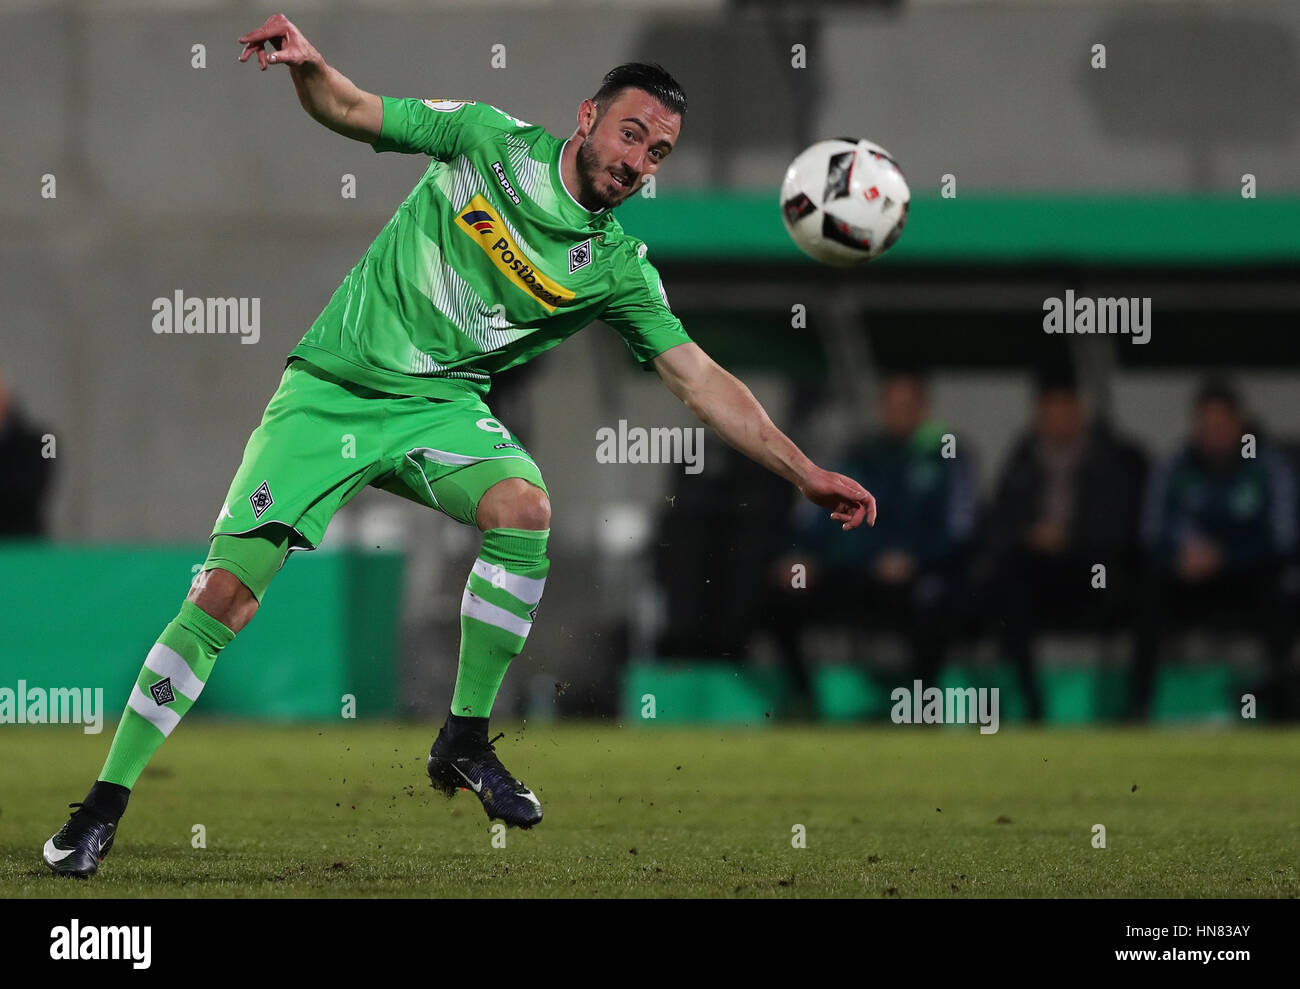 Gladbach's Josip Drmic in action during the German DFBCup round of 16 soccer match between SpVgg Greuther Fuerth Stock Photo